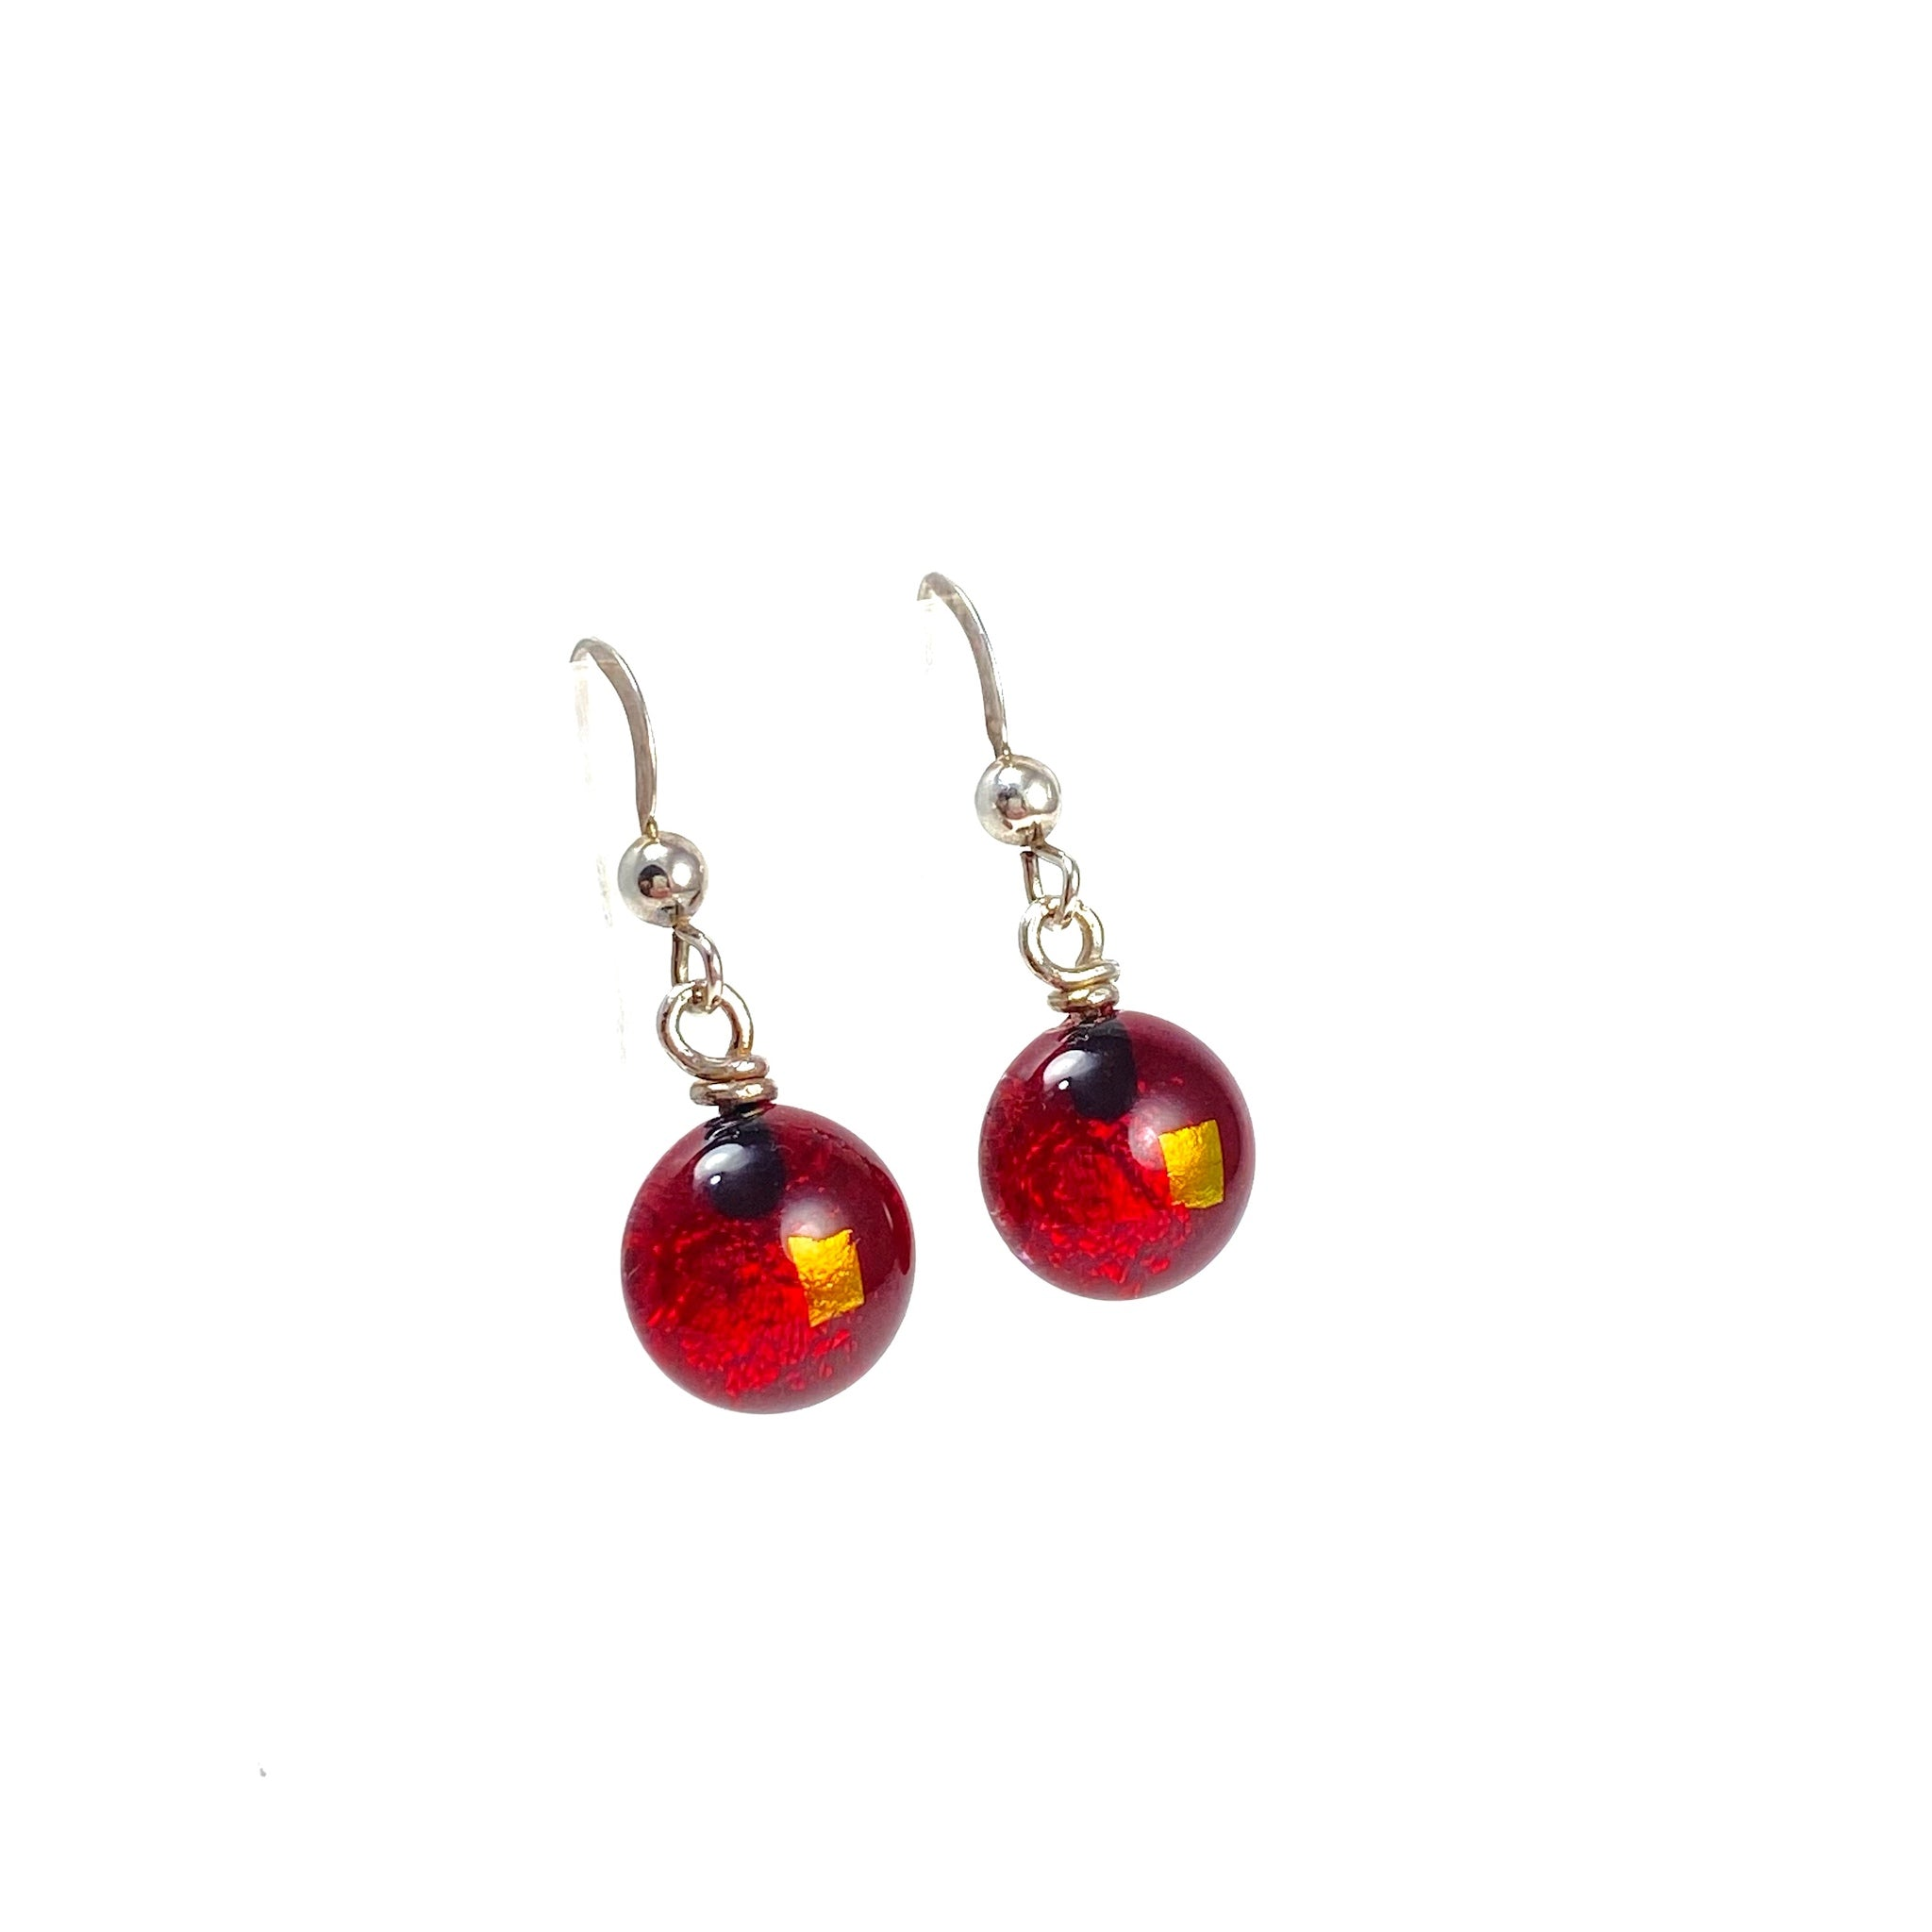 red, space balls, sparkle, glass drops, earrings, fused glass, glass jewelry, glass and silver jewelry, handmade, handcrafted, American Craft, hand fabricated jewelry, hand fabricated jewellery, Athen, Georgia, colorful jewelry, sparkle, bullseye glass, dichroic glass, art jewelry